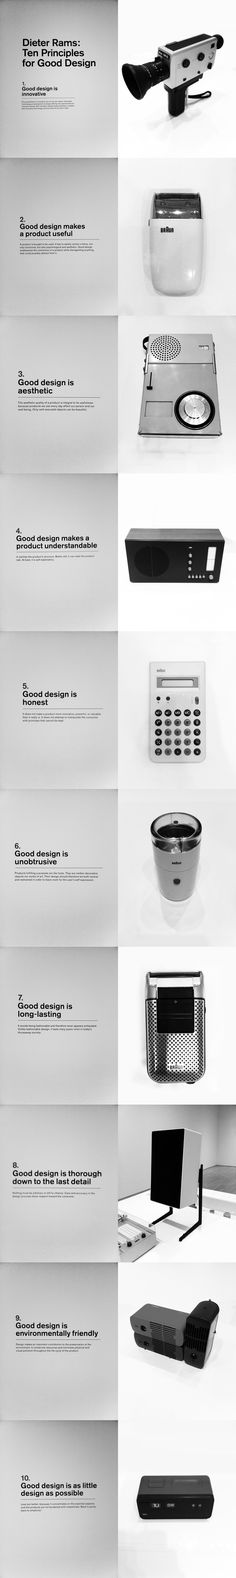 Deiter Rams: Ten Principles for Good Design. Easy to see where Jony Ives got his inspiration from. #braun